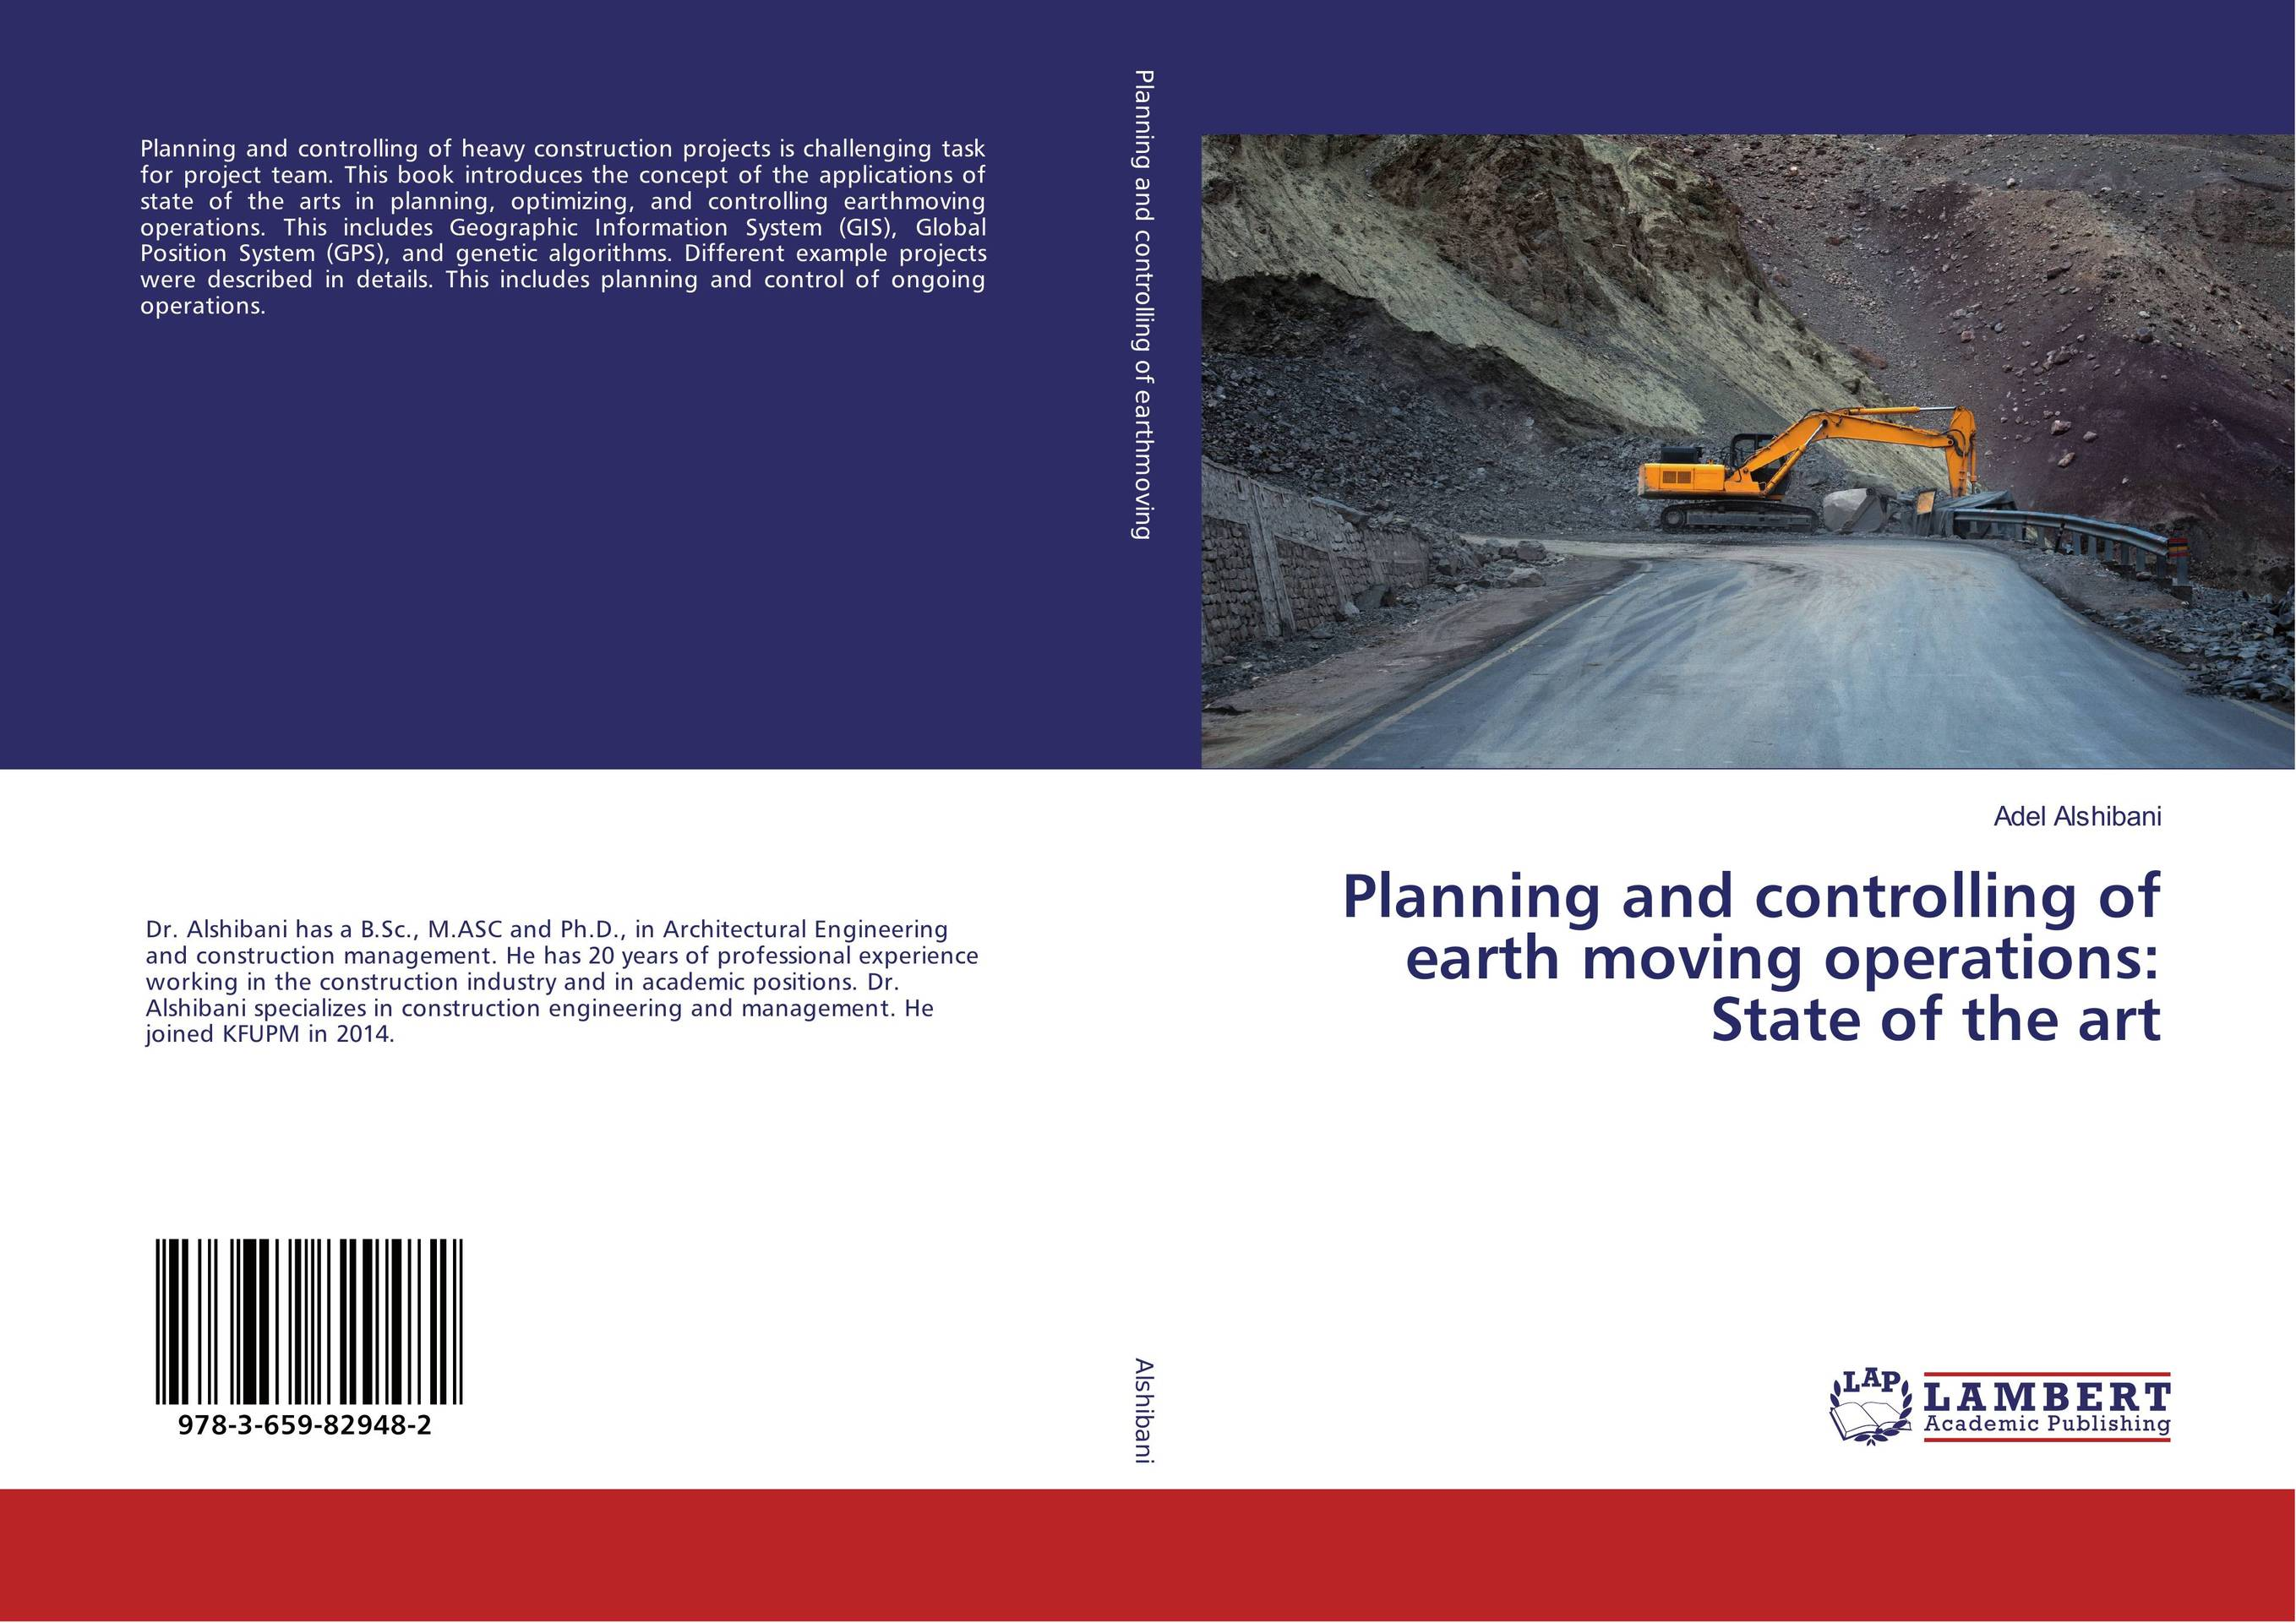 Planning and controlling of earth moving operations: State of the art affair of state an